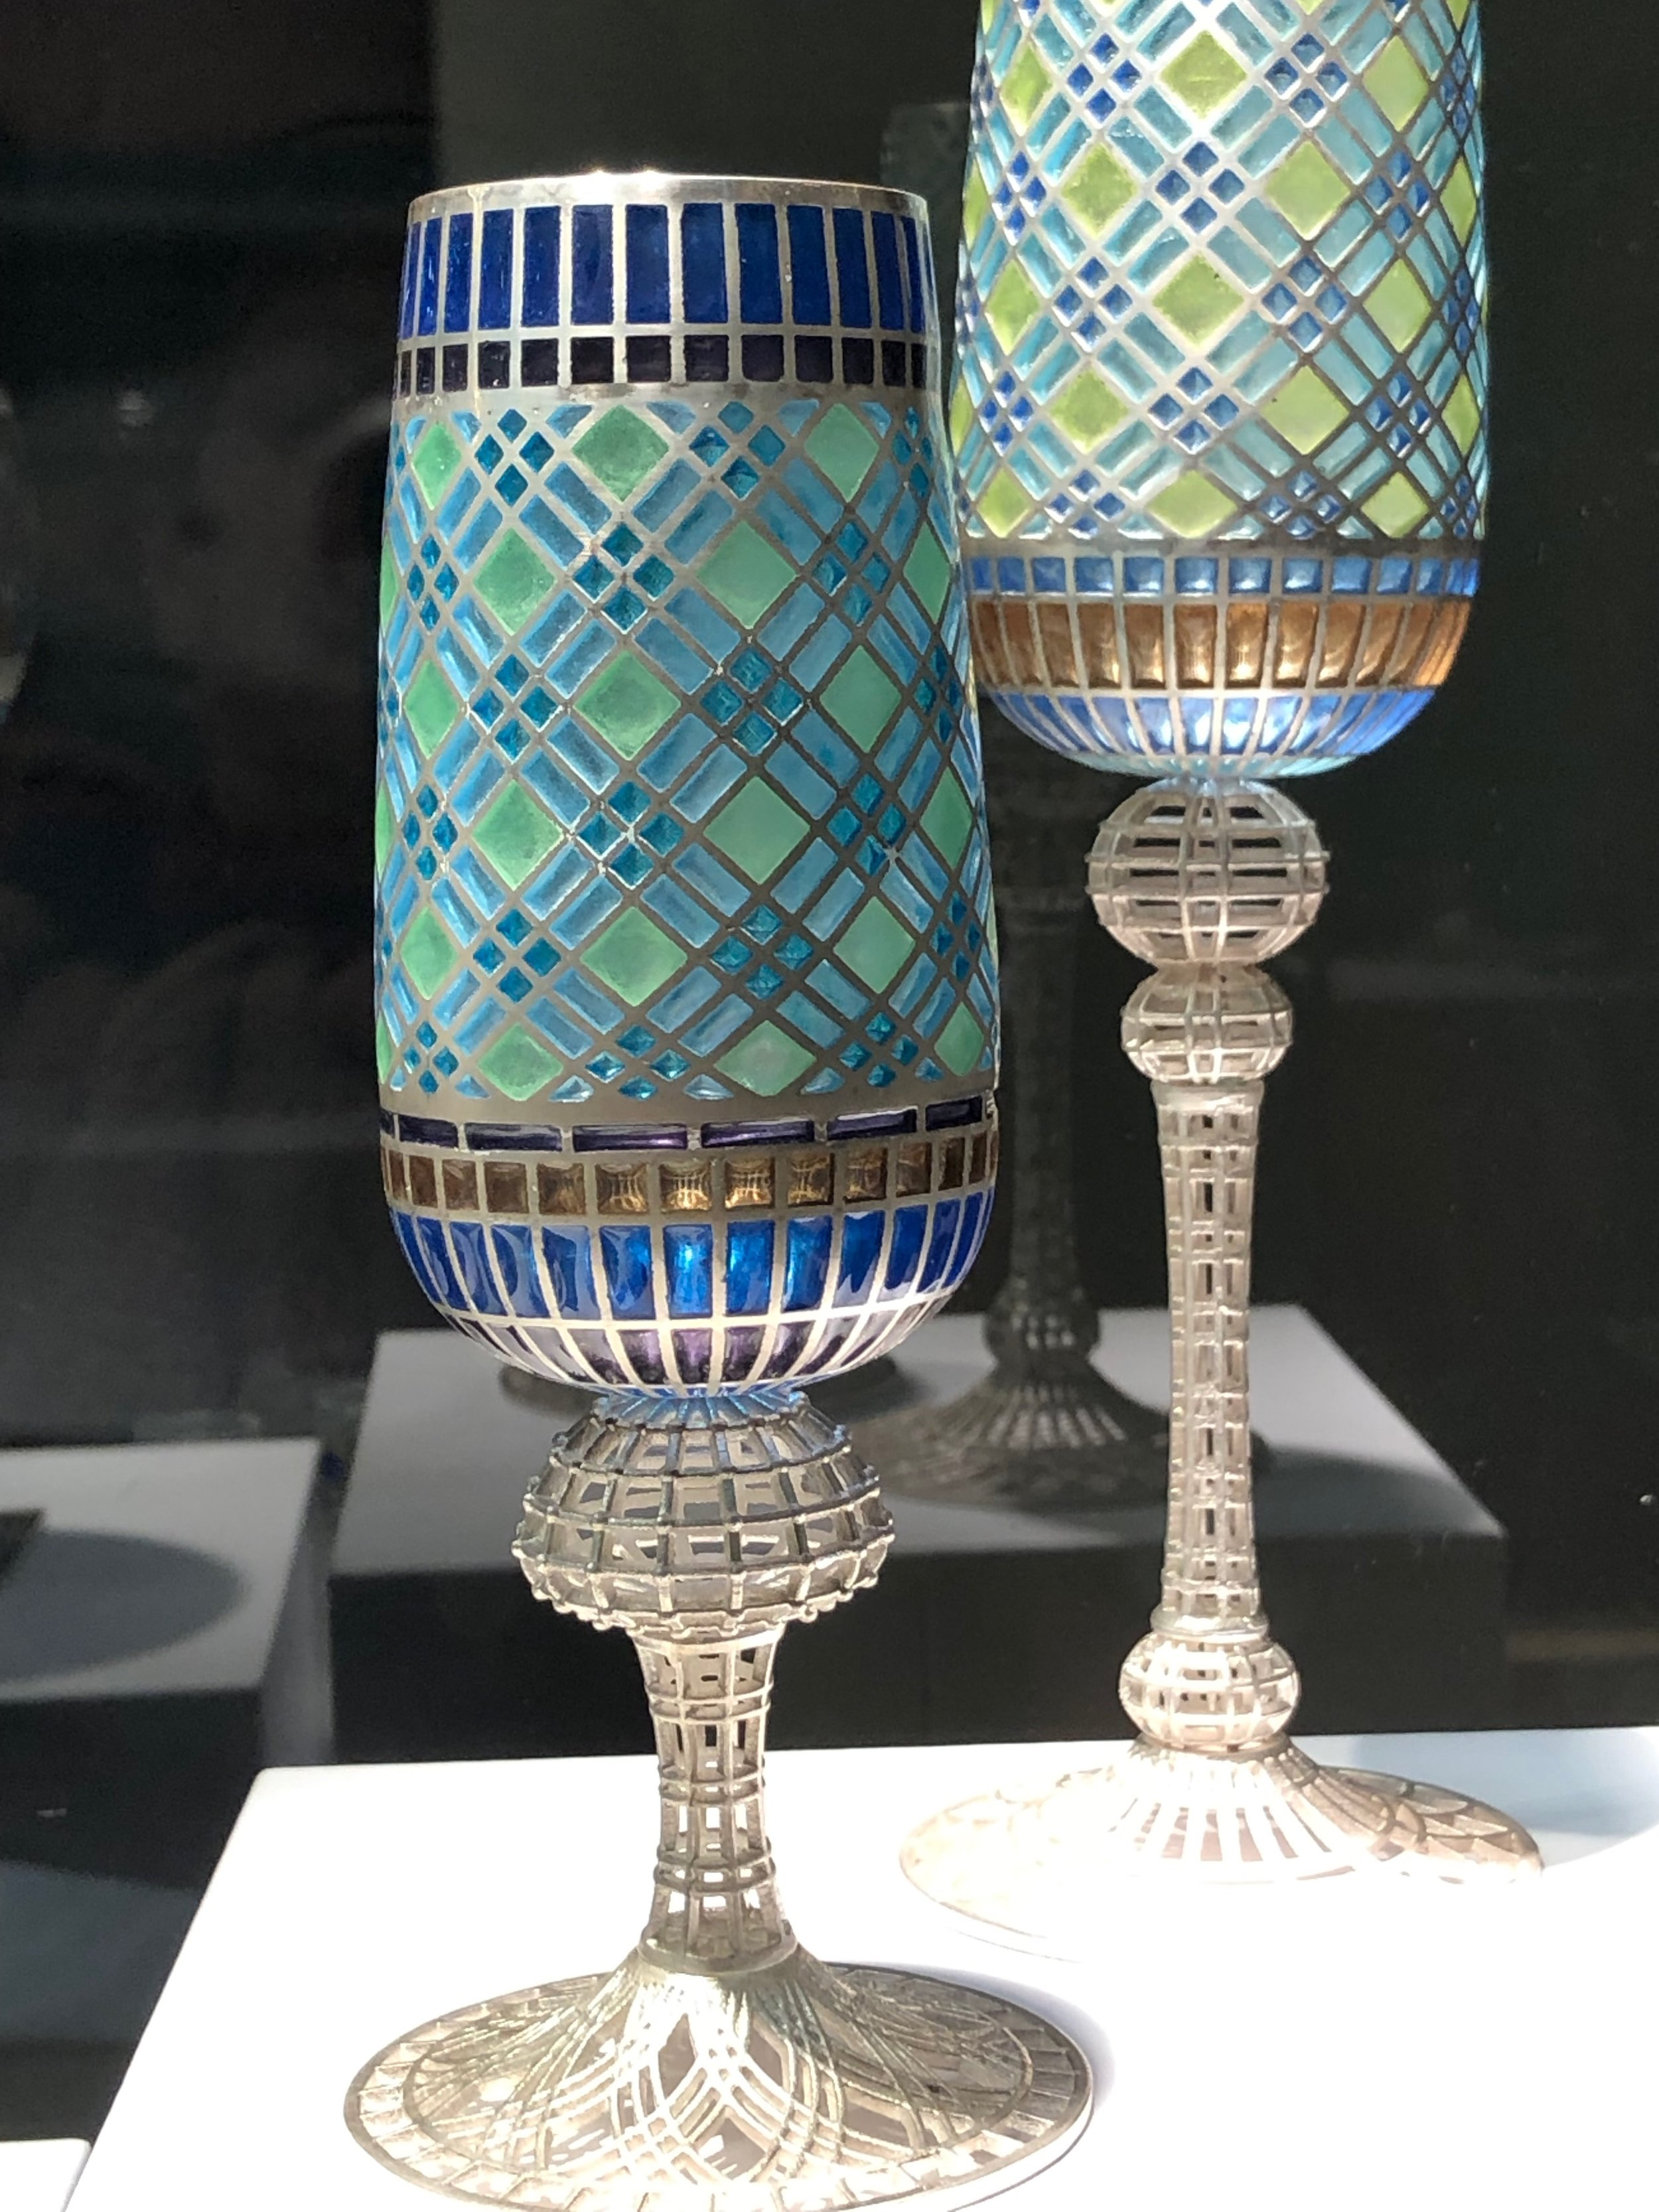 amy roper lyons's    mom explained her plique a jour process to me — way detailed — that she learned from an old russian master before he died. a future investment? gotta save up for these.